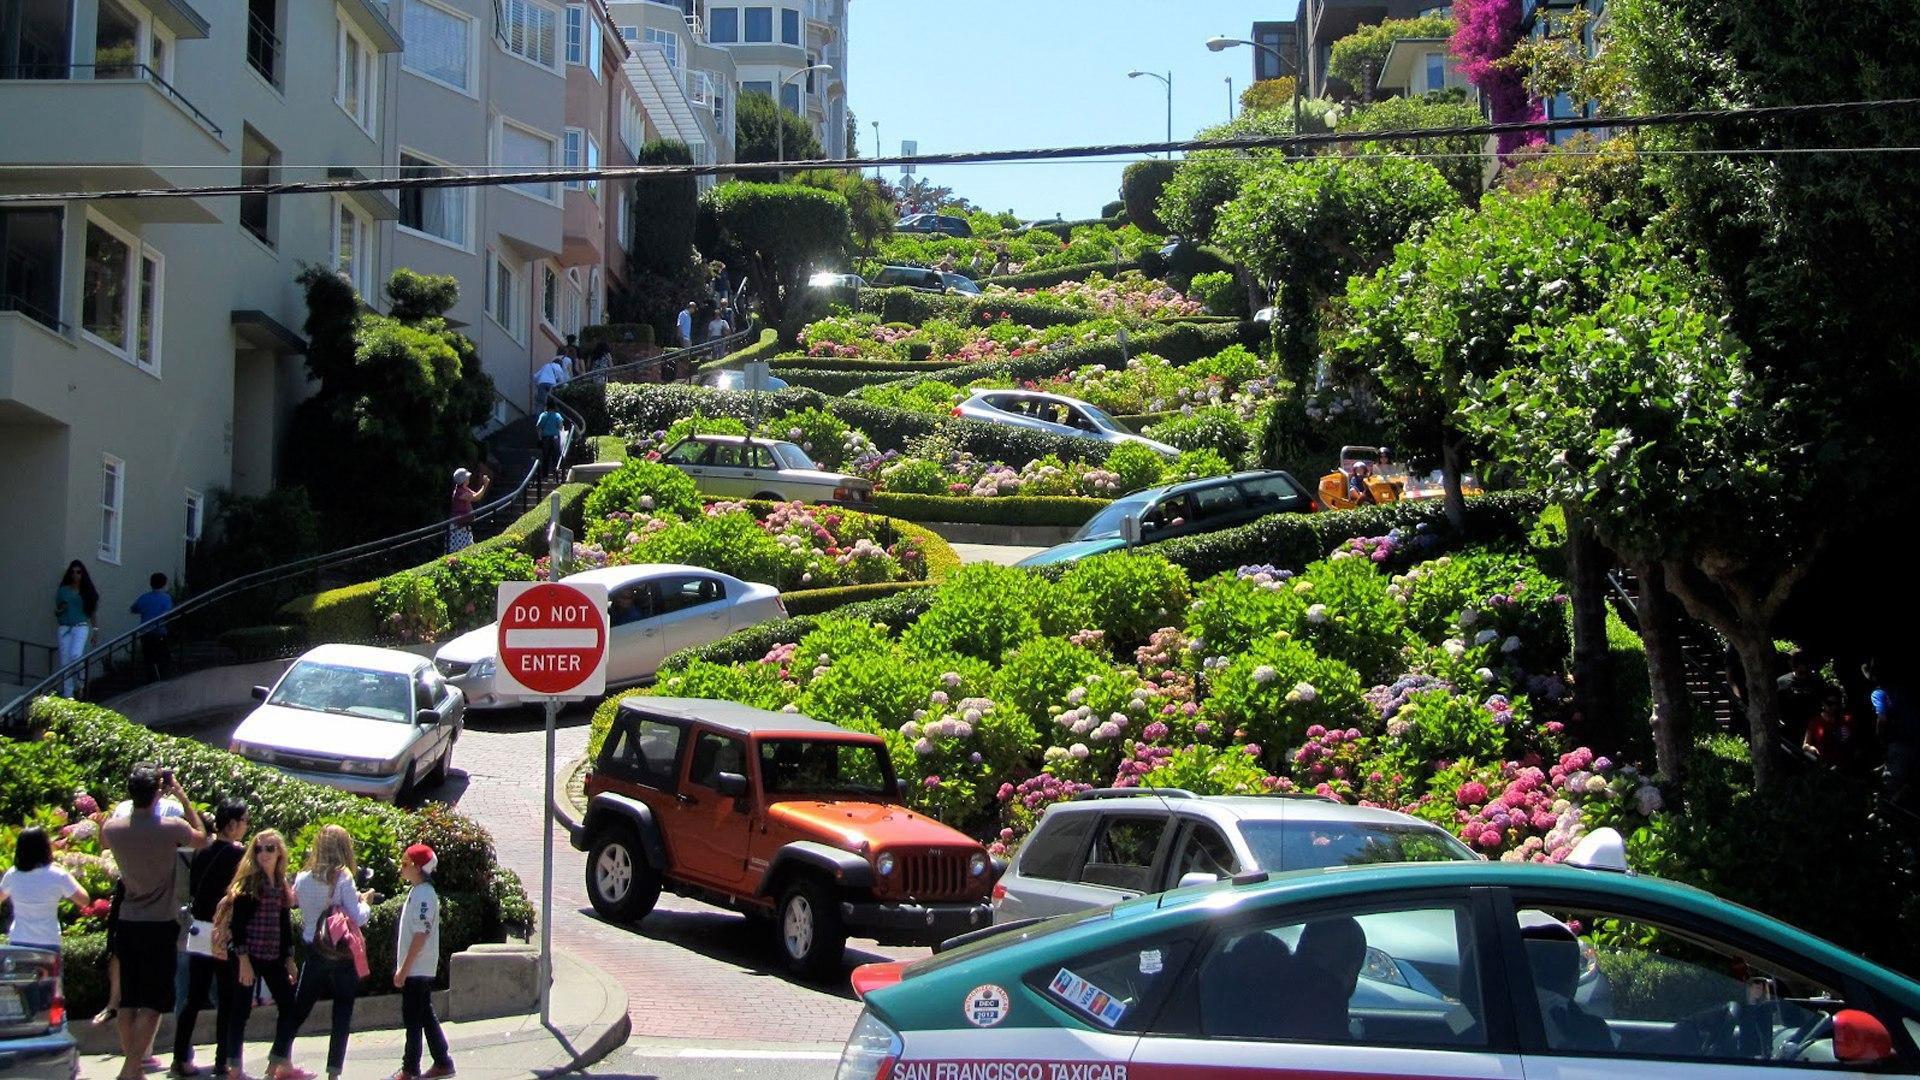 Lombard Street in San Francisco wallpapers and image